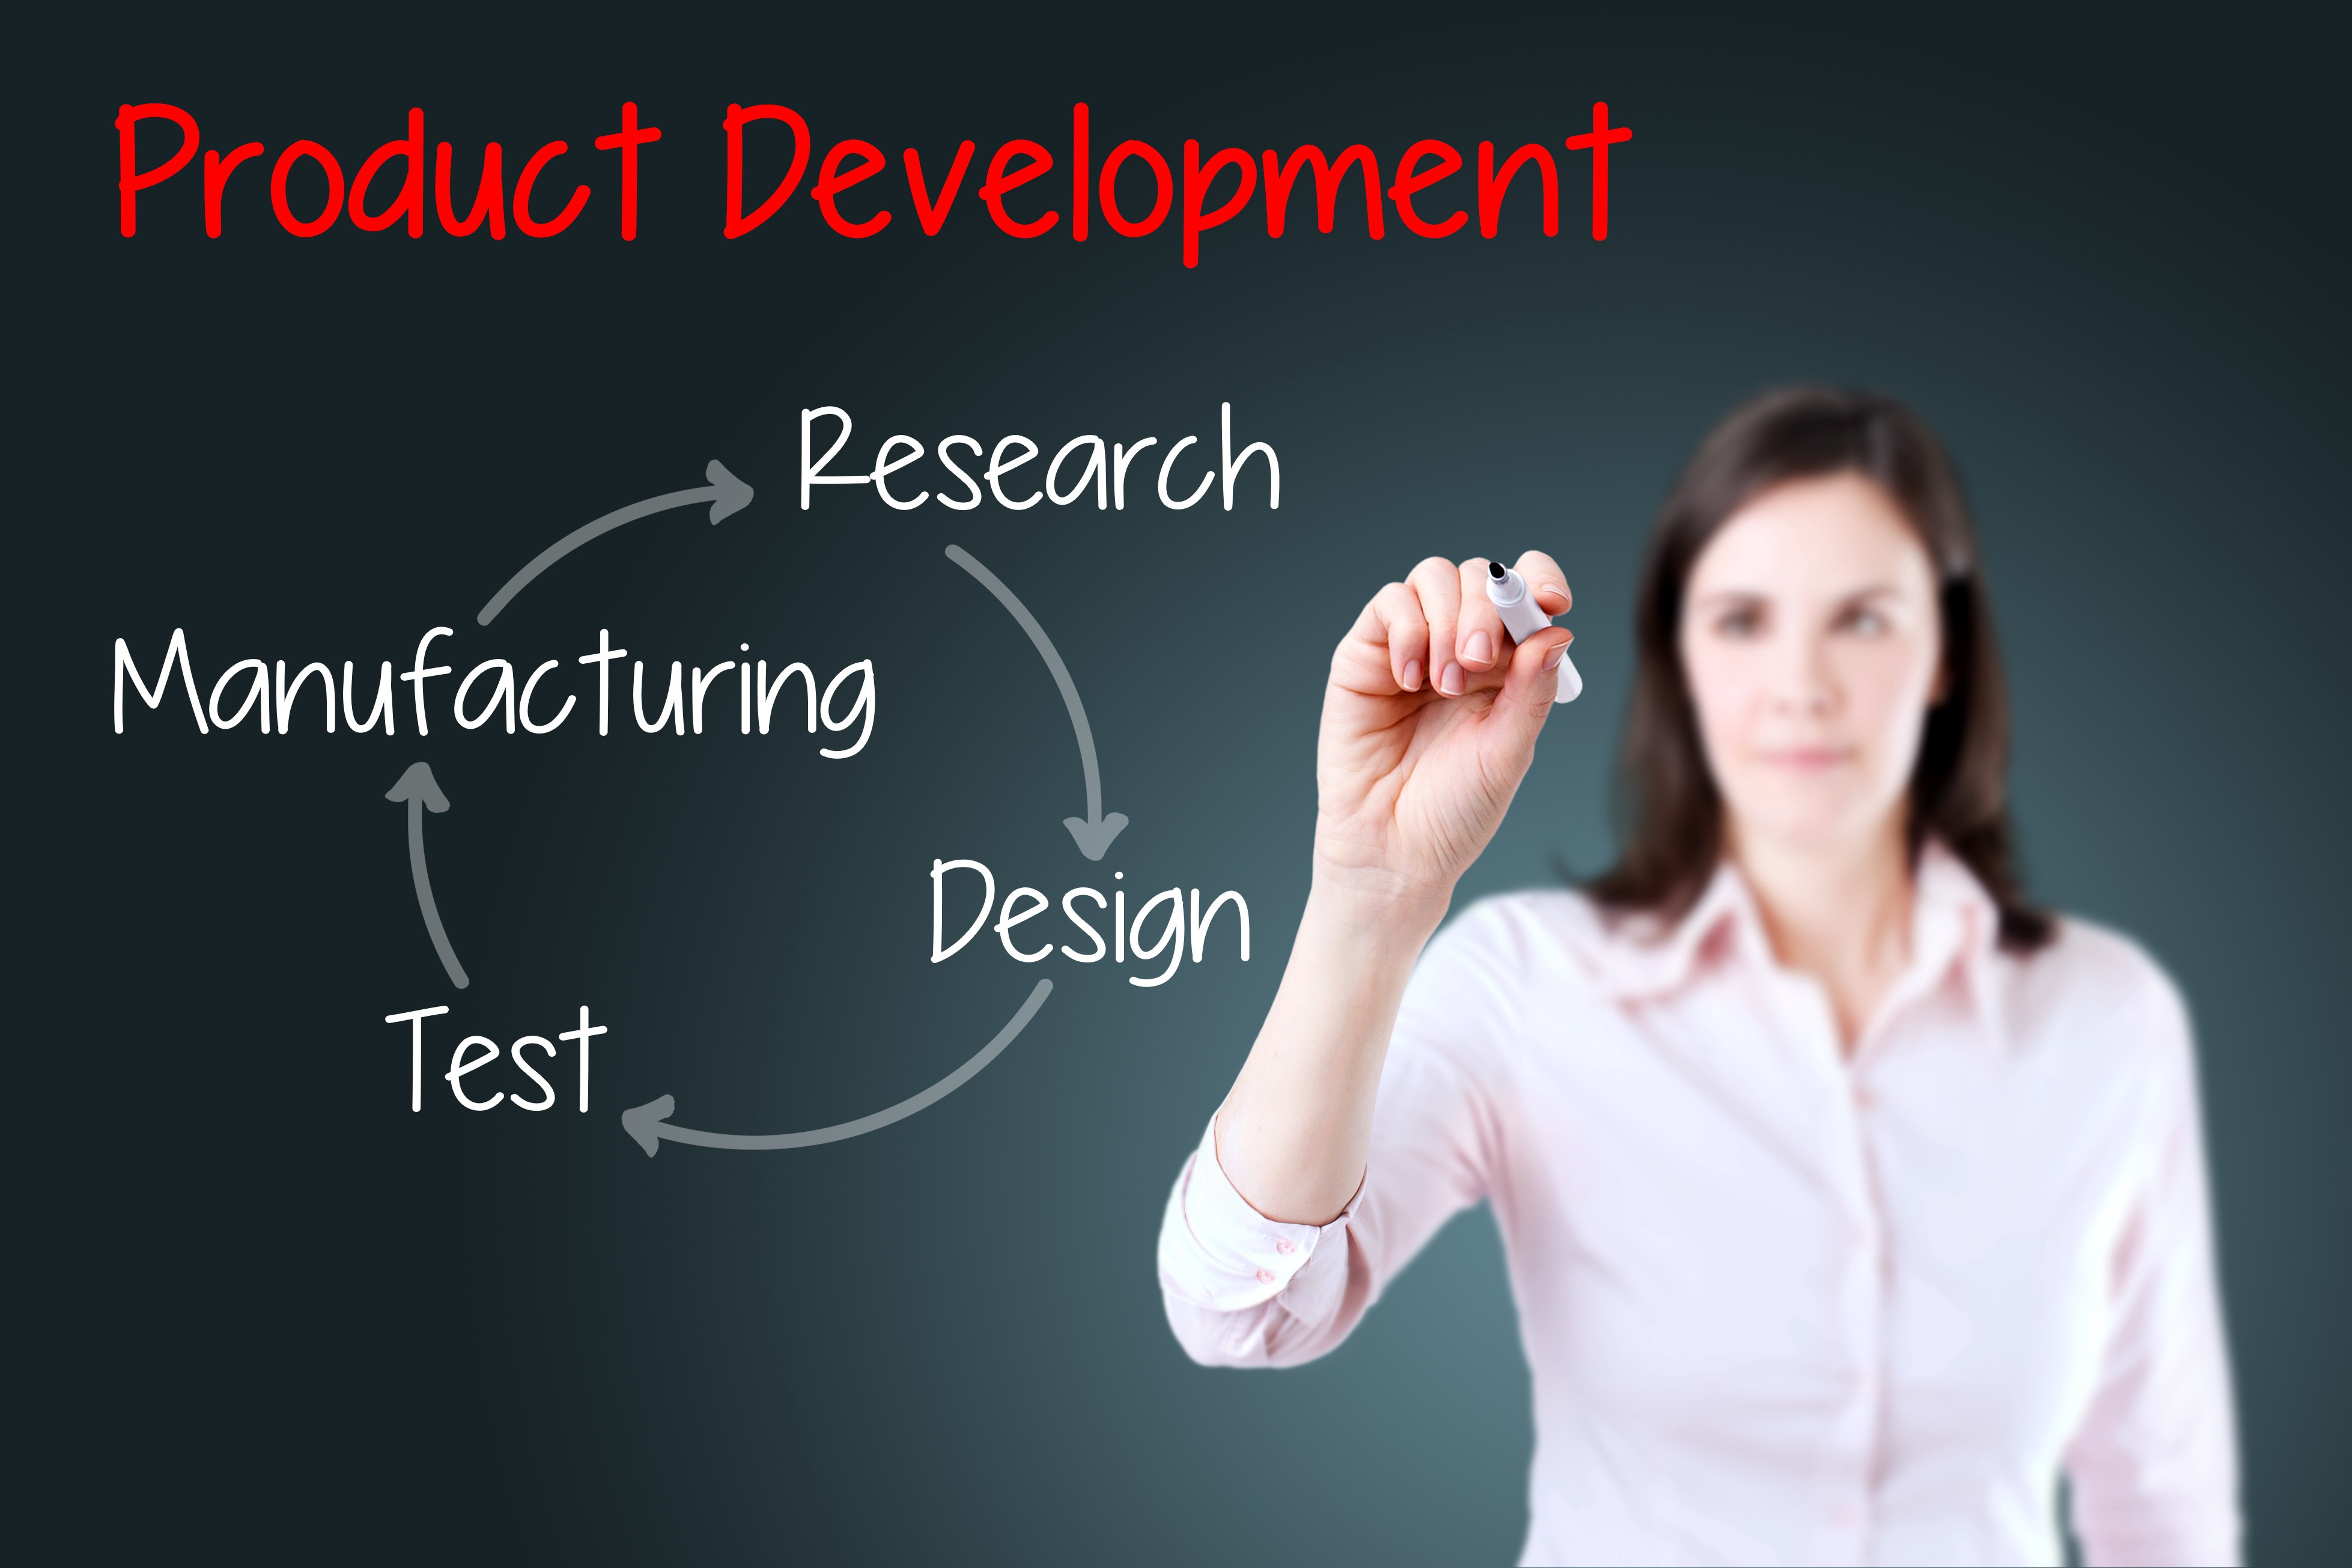 5 Stages of Product Development You Need to Know   by Peterman Design Firm    Medium